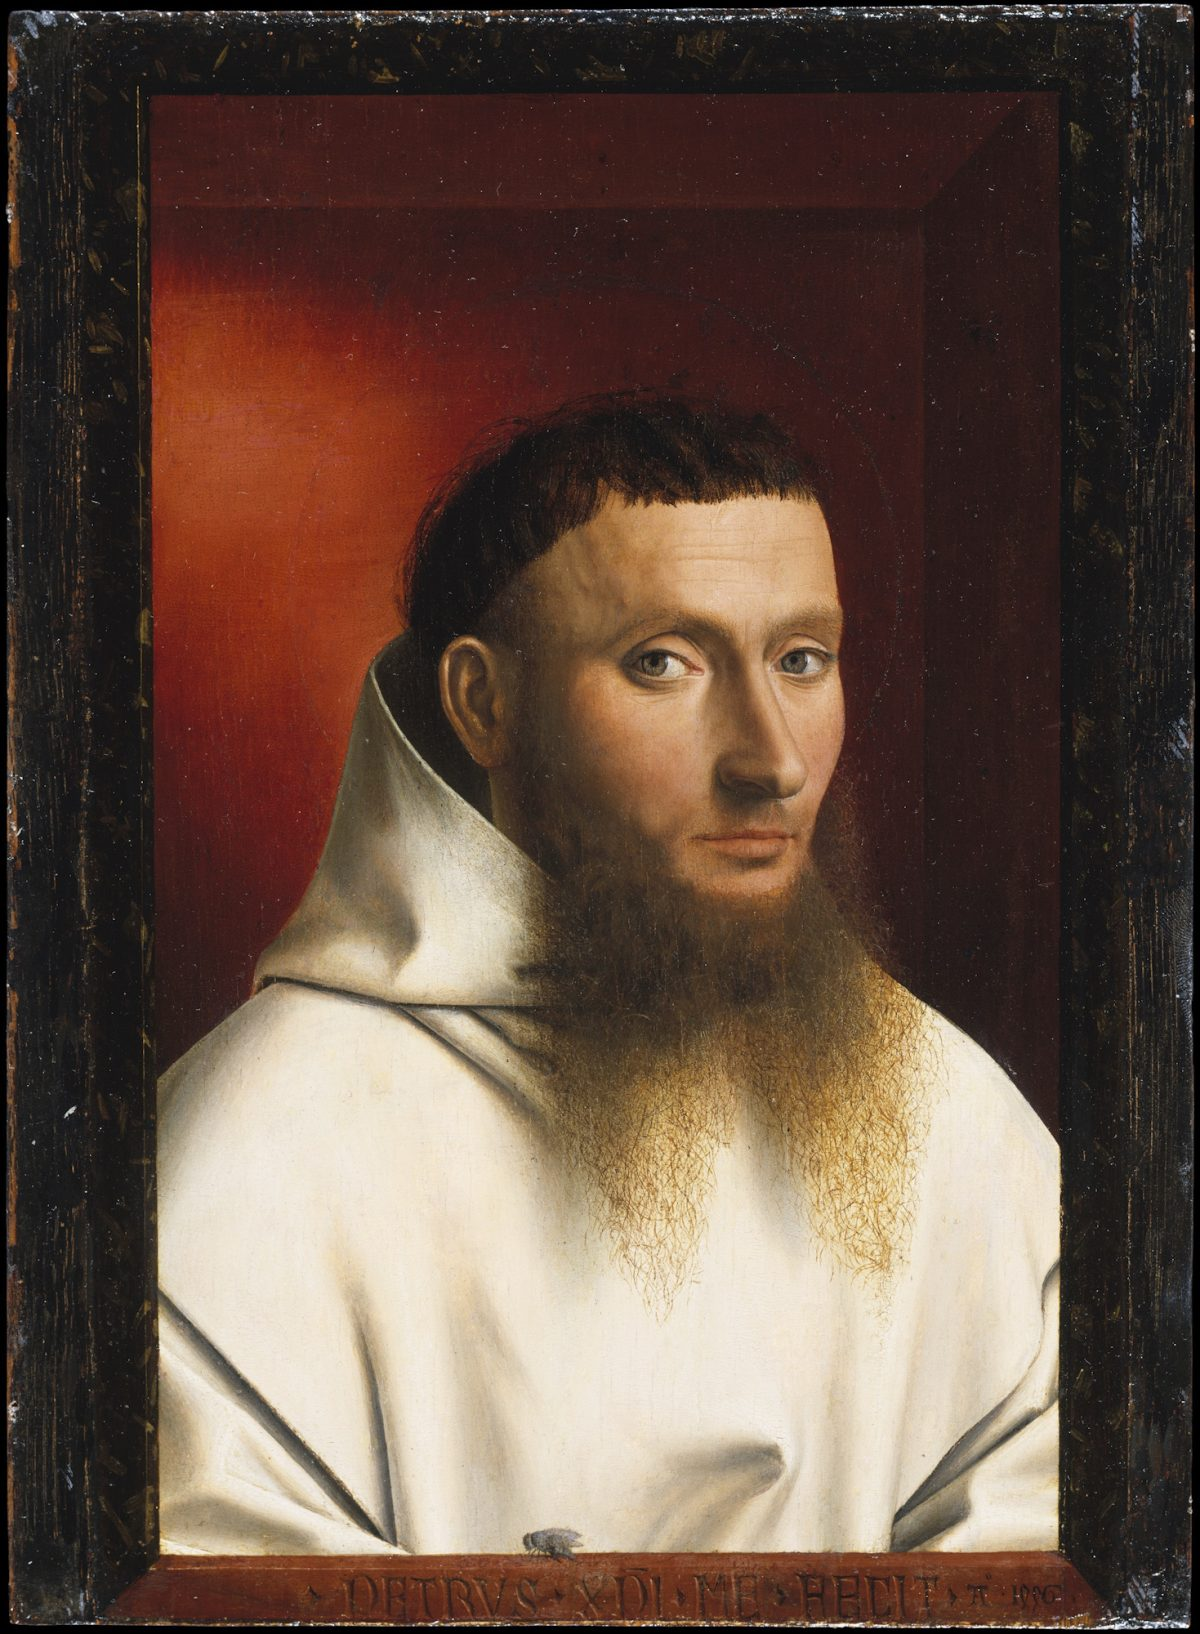 """Portrait of a Carthusian Lay Brother,"" 1446, by Petrus Christus. Oil on wood, 11 1/2 inches by 8 1/2 inches, The Jules Bache Collection, The Metropolitan Museum of Art. (Courtesy of The Frick Collection)"